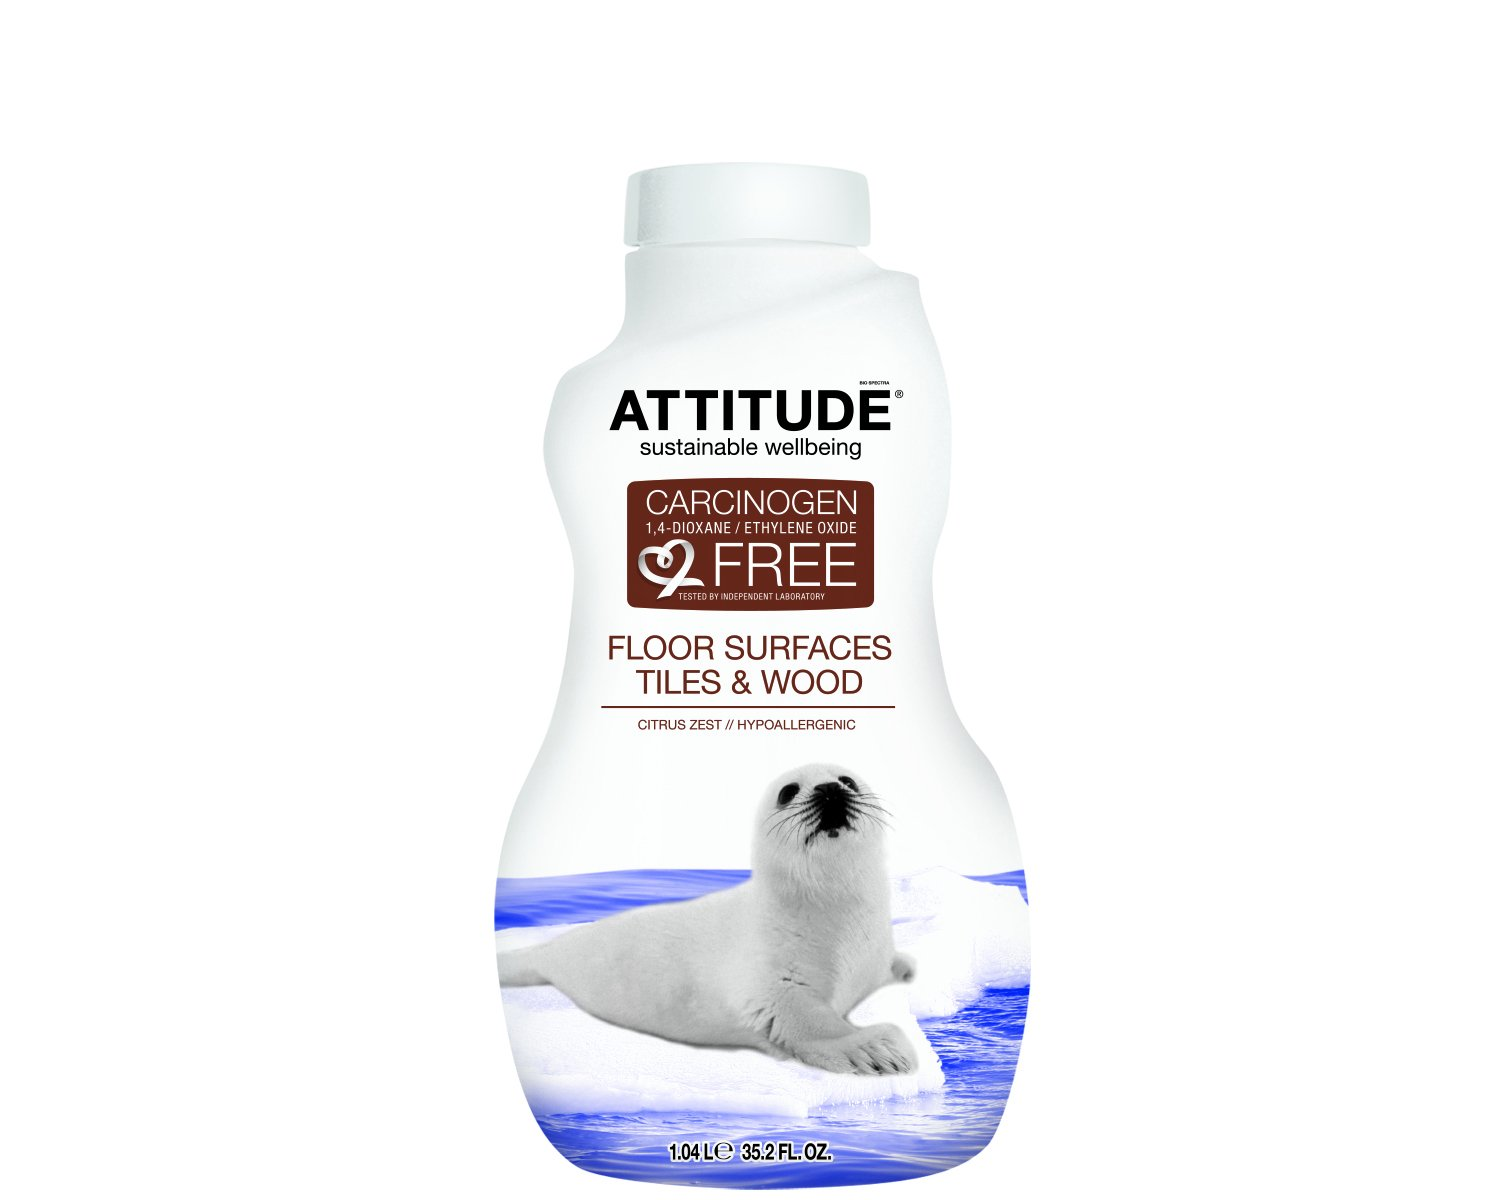 Natural Floor Cleaner, Hypoallergenic, Free of Contaminants and Potentially Harmful Preservatives, 100% Safe. (27.1 oz) by Attitude (Image #1)